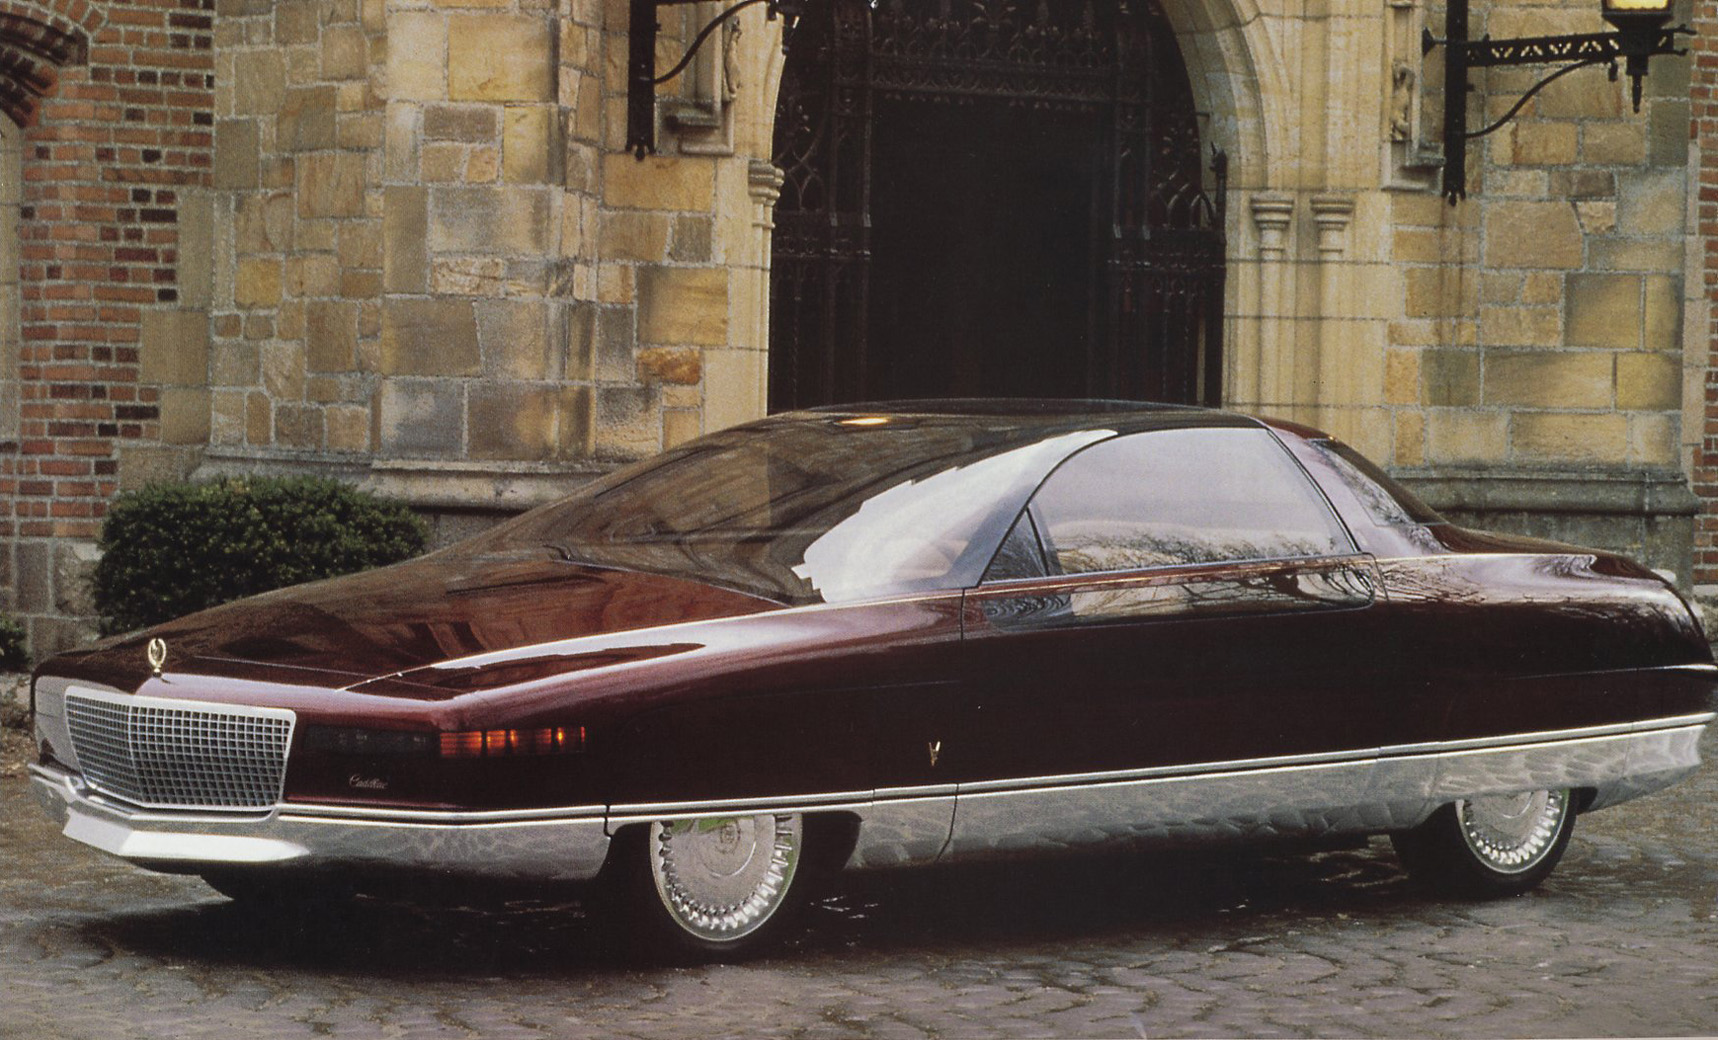 cadillac solitaire #2